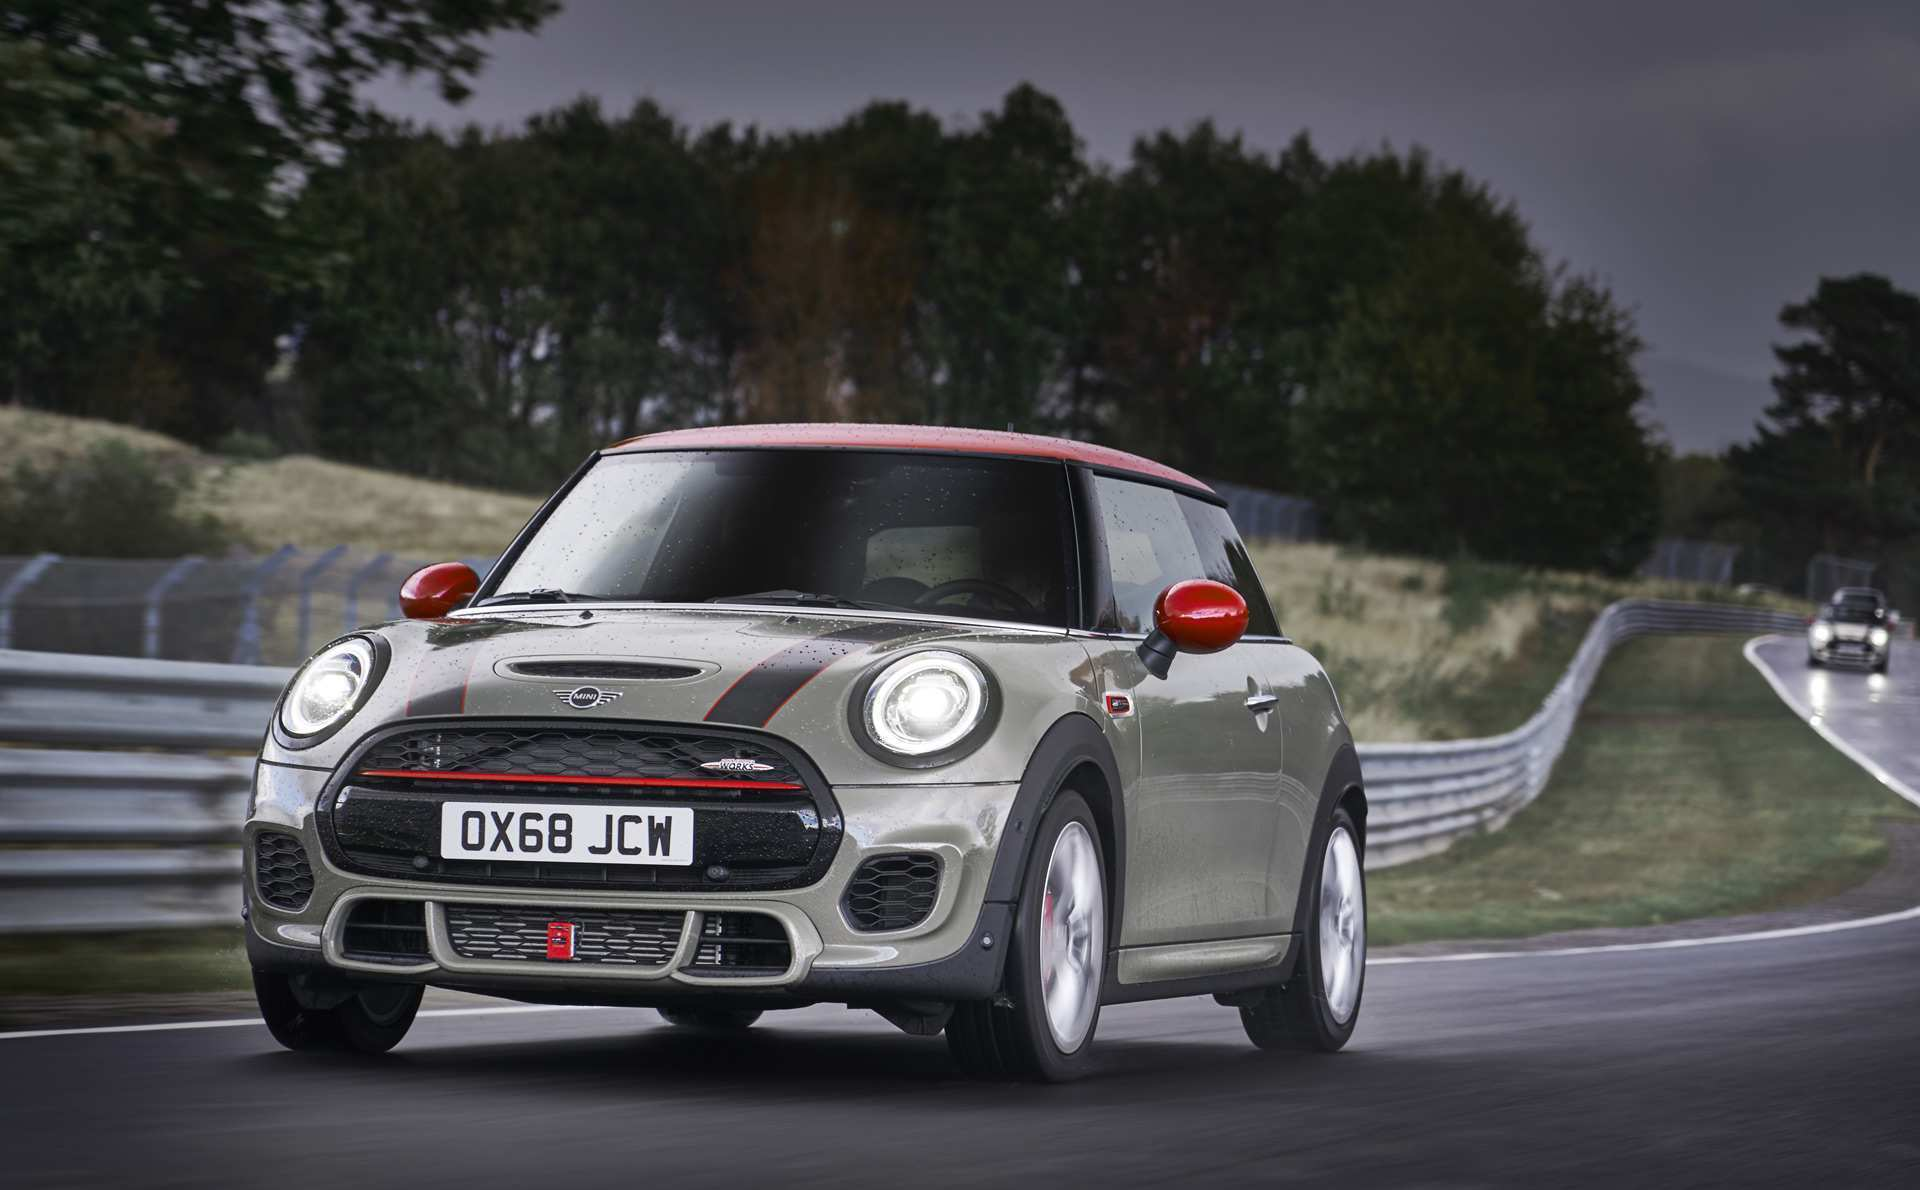 72 New 2019 Mini Jcw Reviews by 2019 Mini Jcw